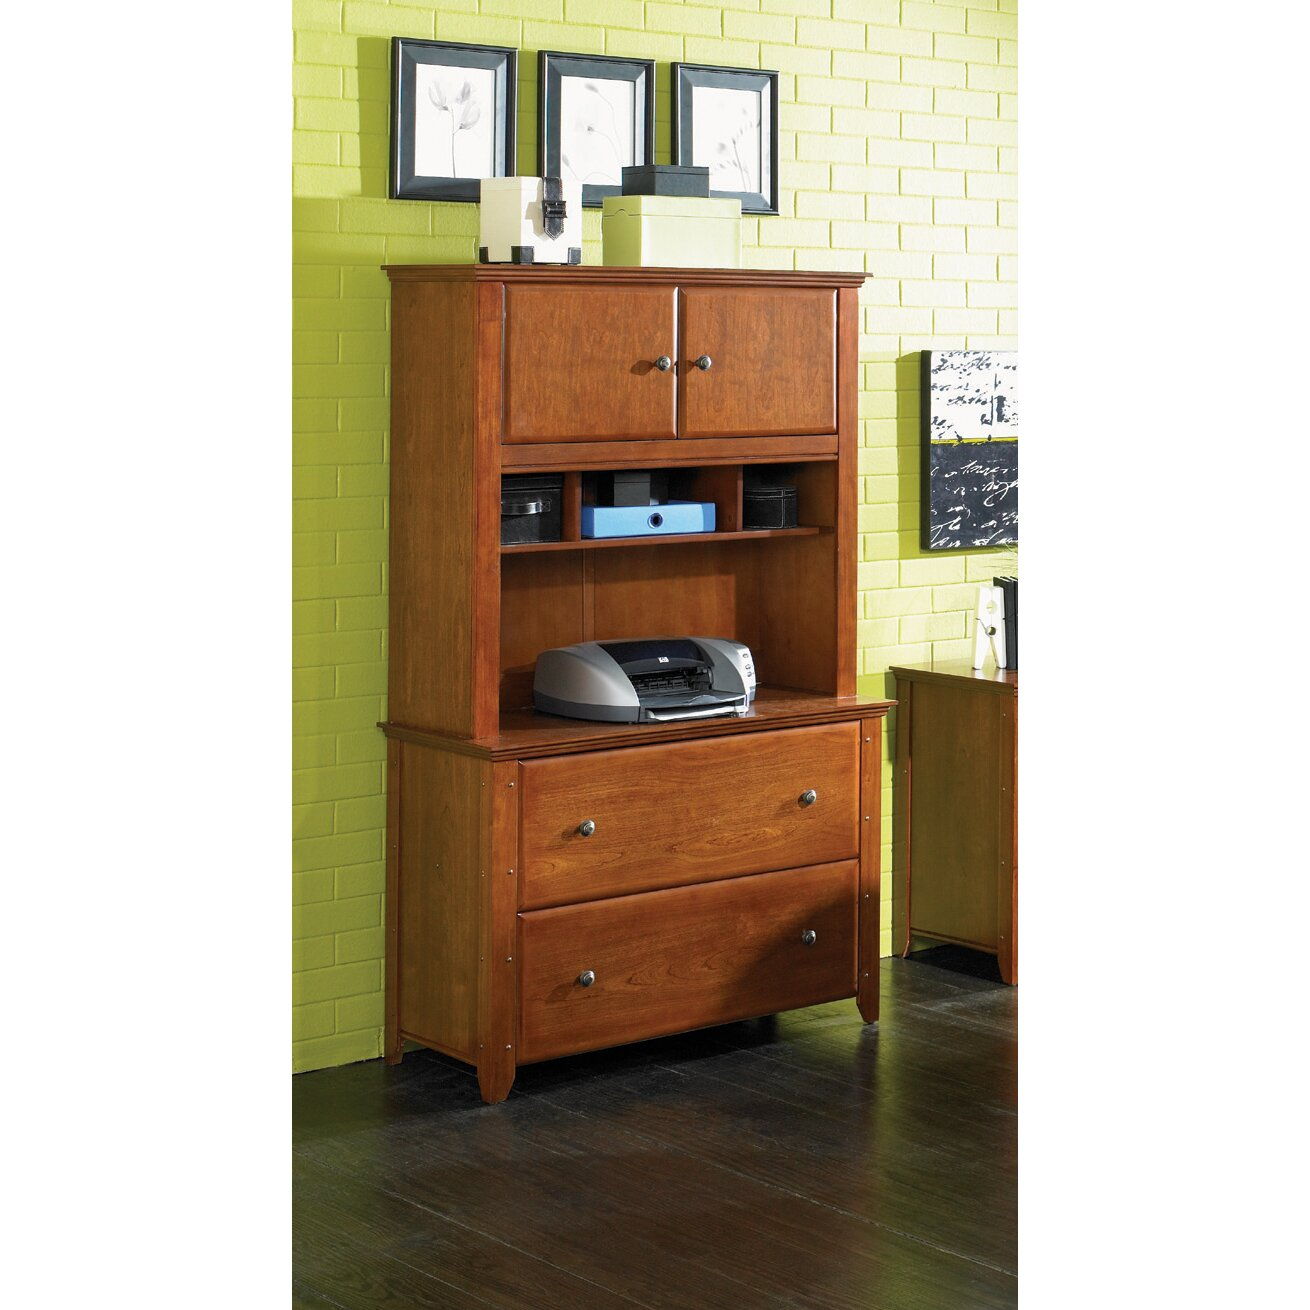 OS Home & Office Furniture Hudson Valley Storage Cabinet